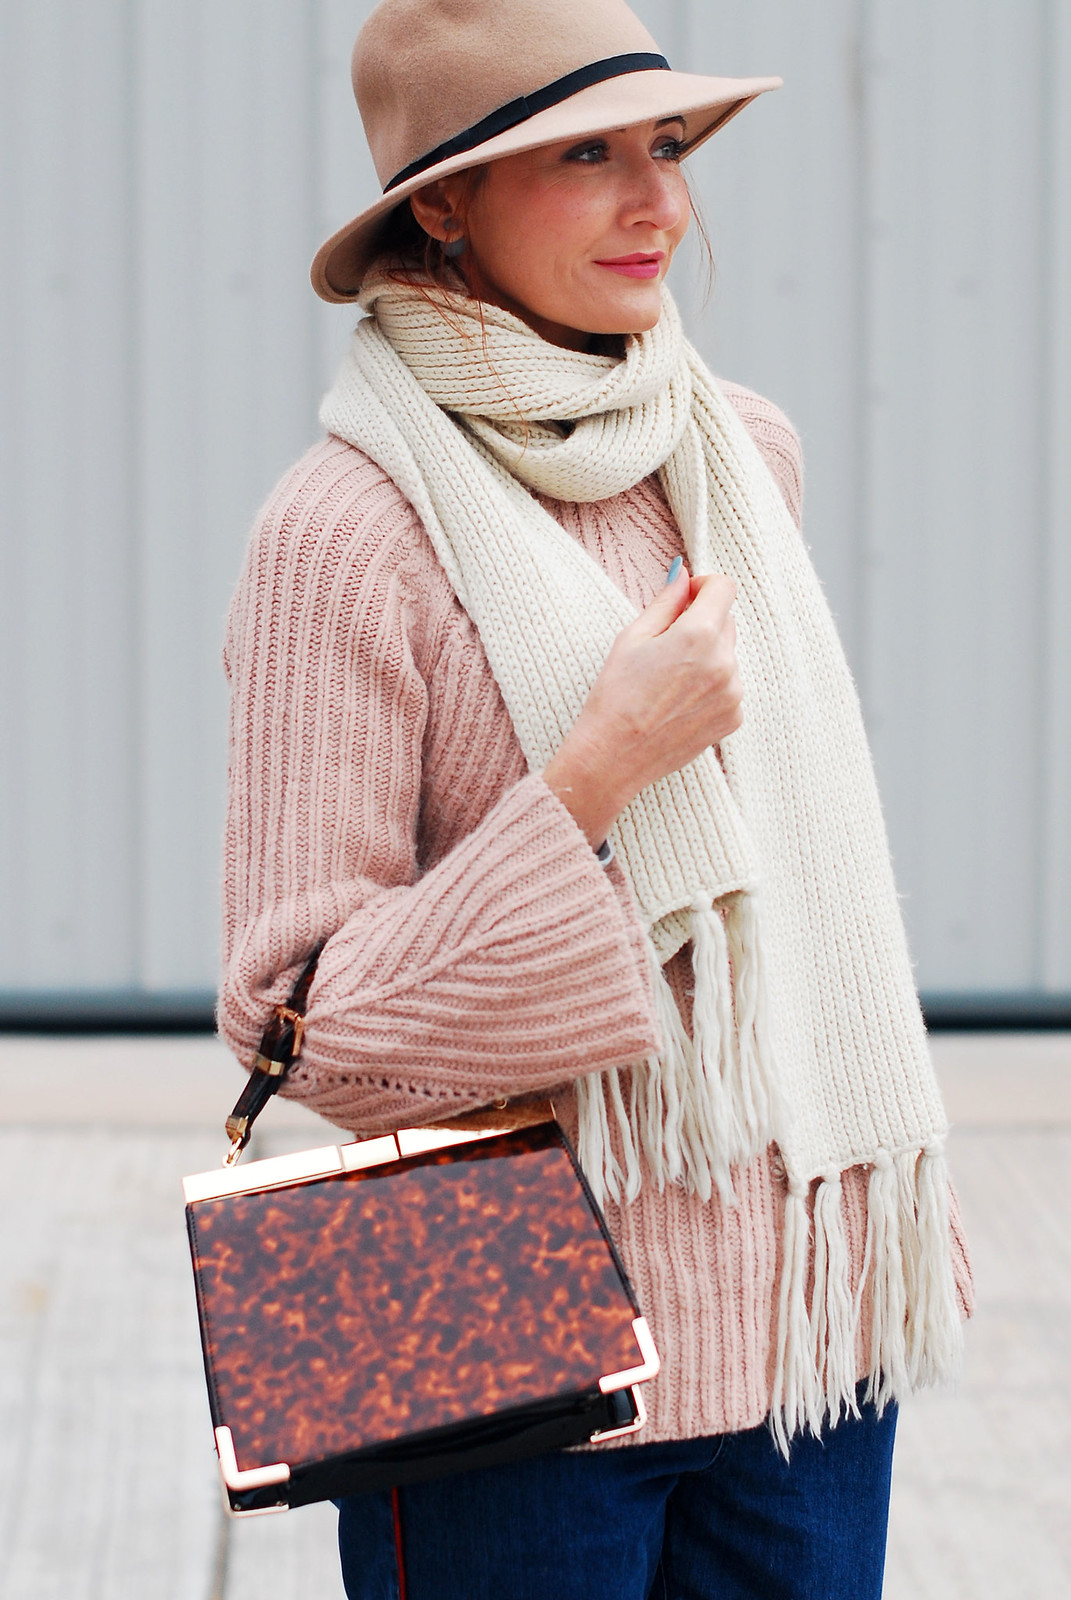 Casual autumn/fall outfit - Blush pink cable knit sweater, peg leg jeans, camel fedora, Gucci-inspired pink fringed block heel loafers, tortoiseshell handbag | Not Dressed As Lamb, over 40 style blog